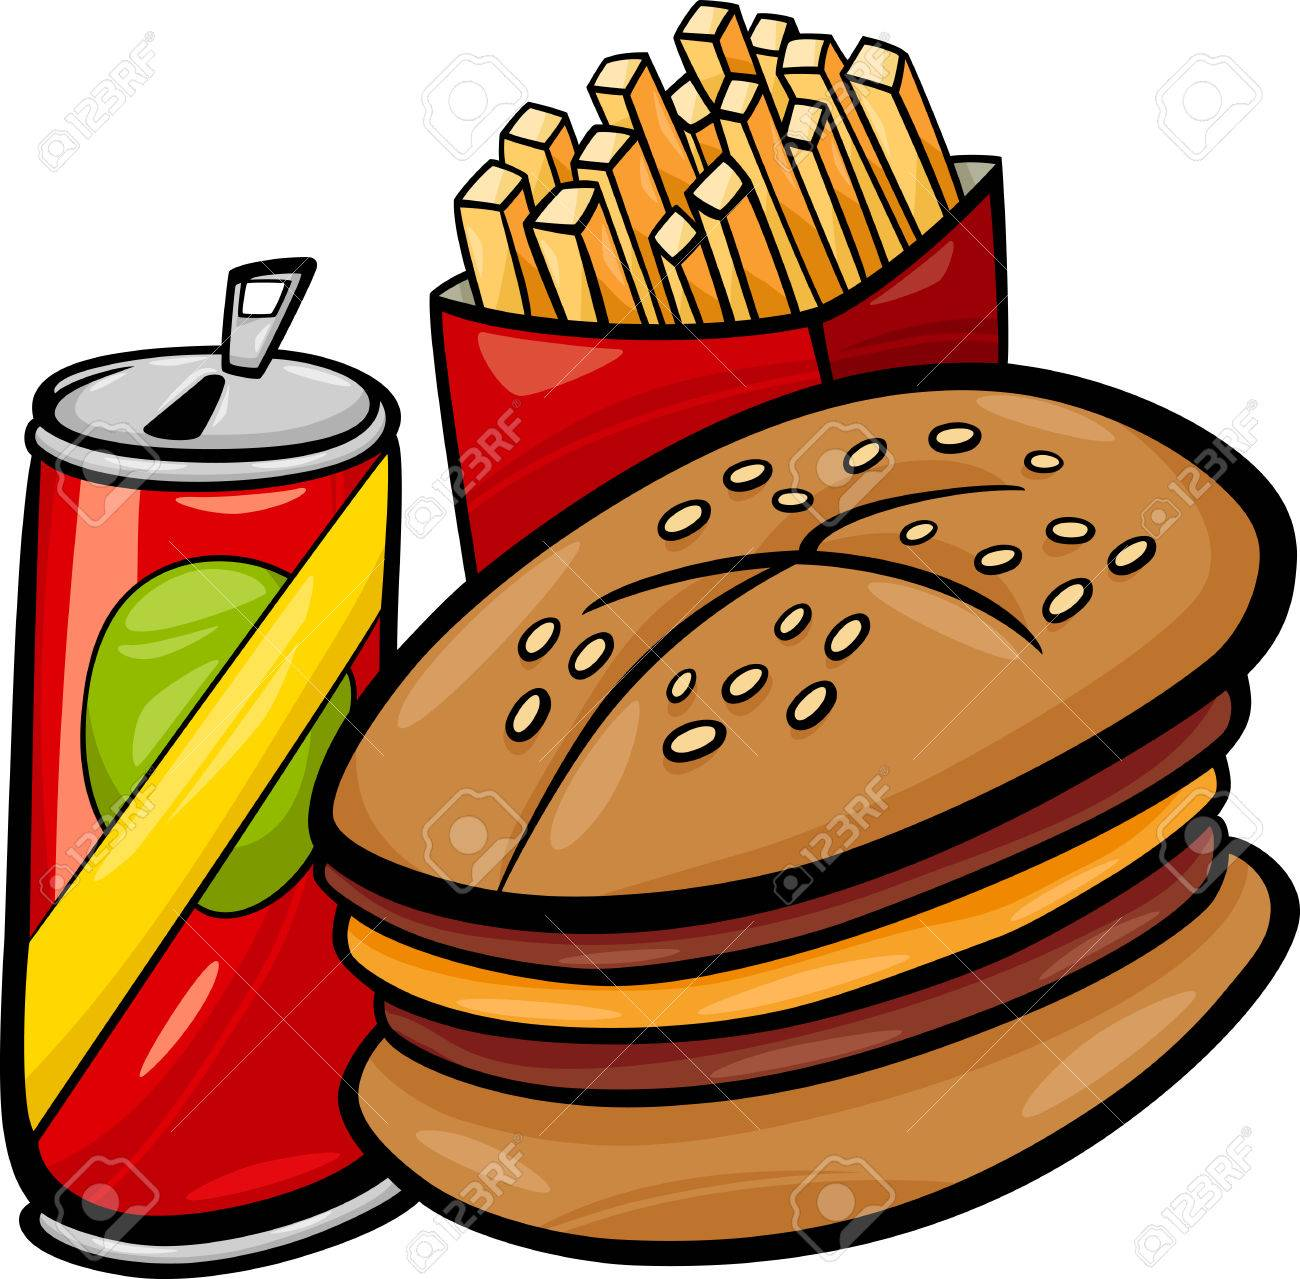 Cartoon Illustration of Fast Food Set with Hamburger and French...